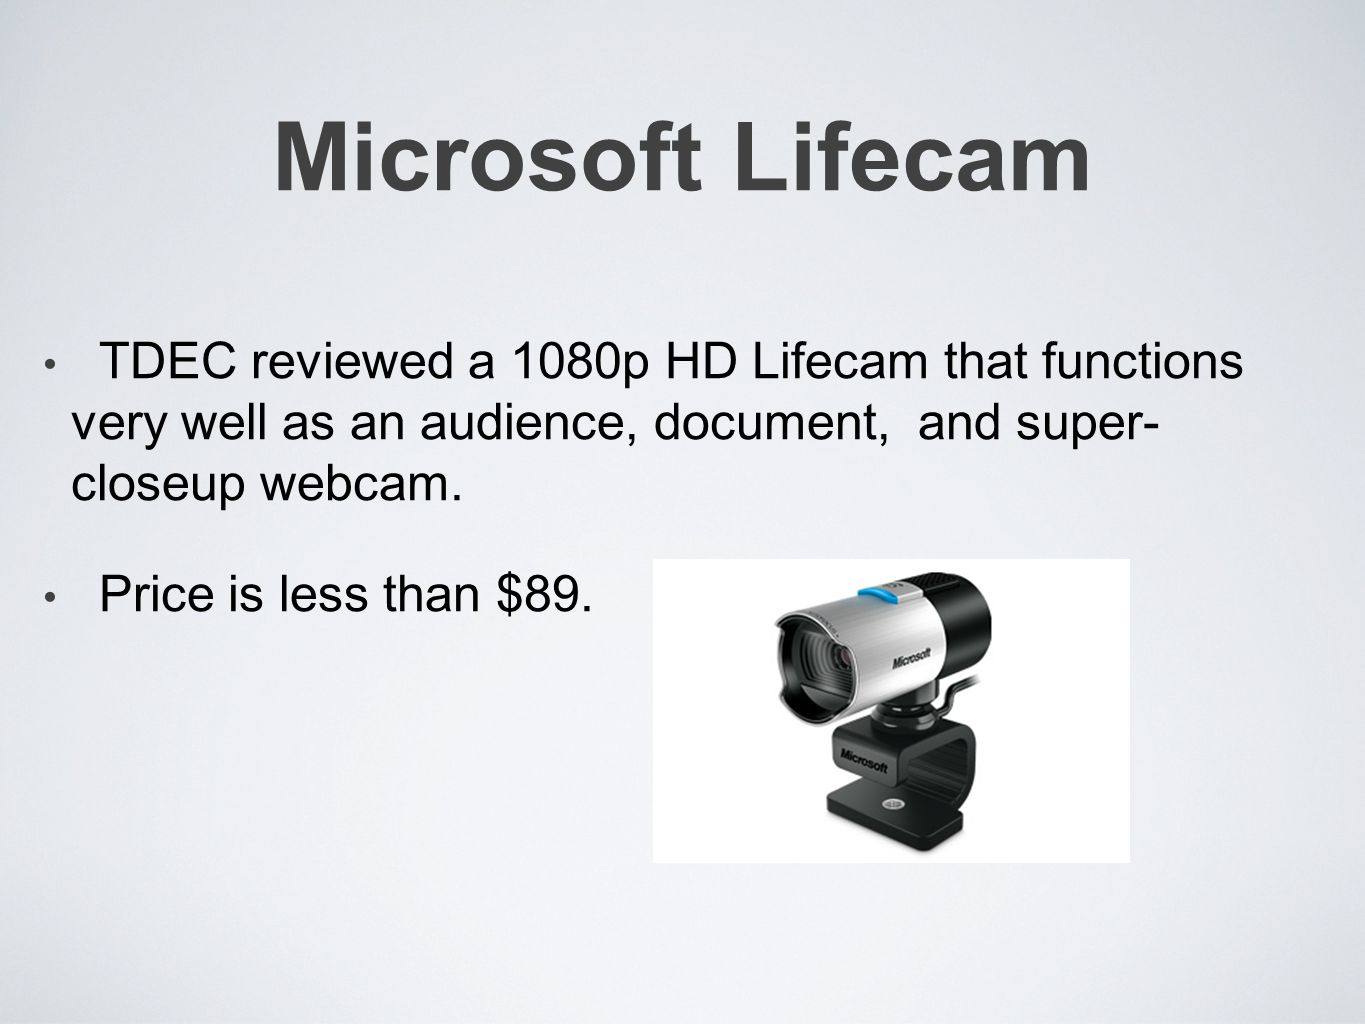 Microsoft Lifecam TDEC reviewed a 1080p HD Lifecam that functions very well as an audience, document, and super- closeup webcam.